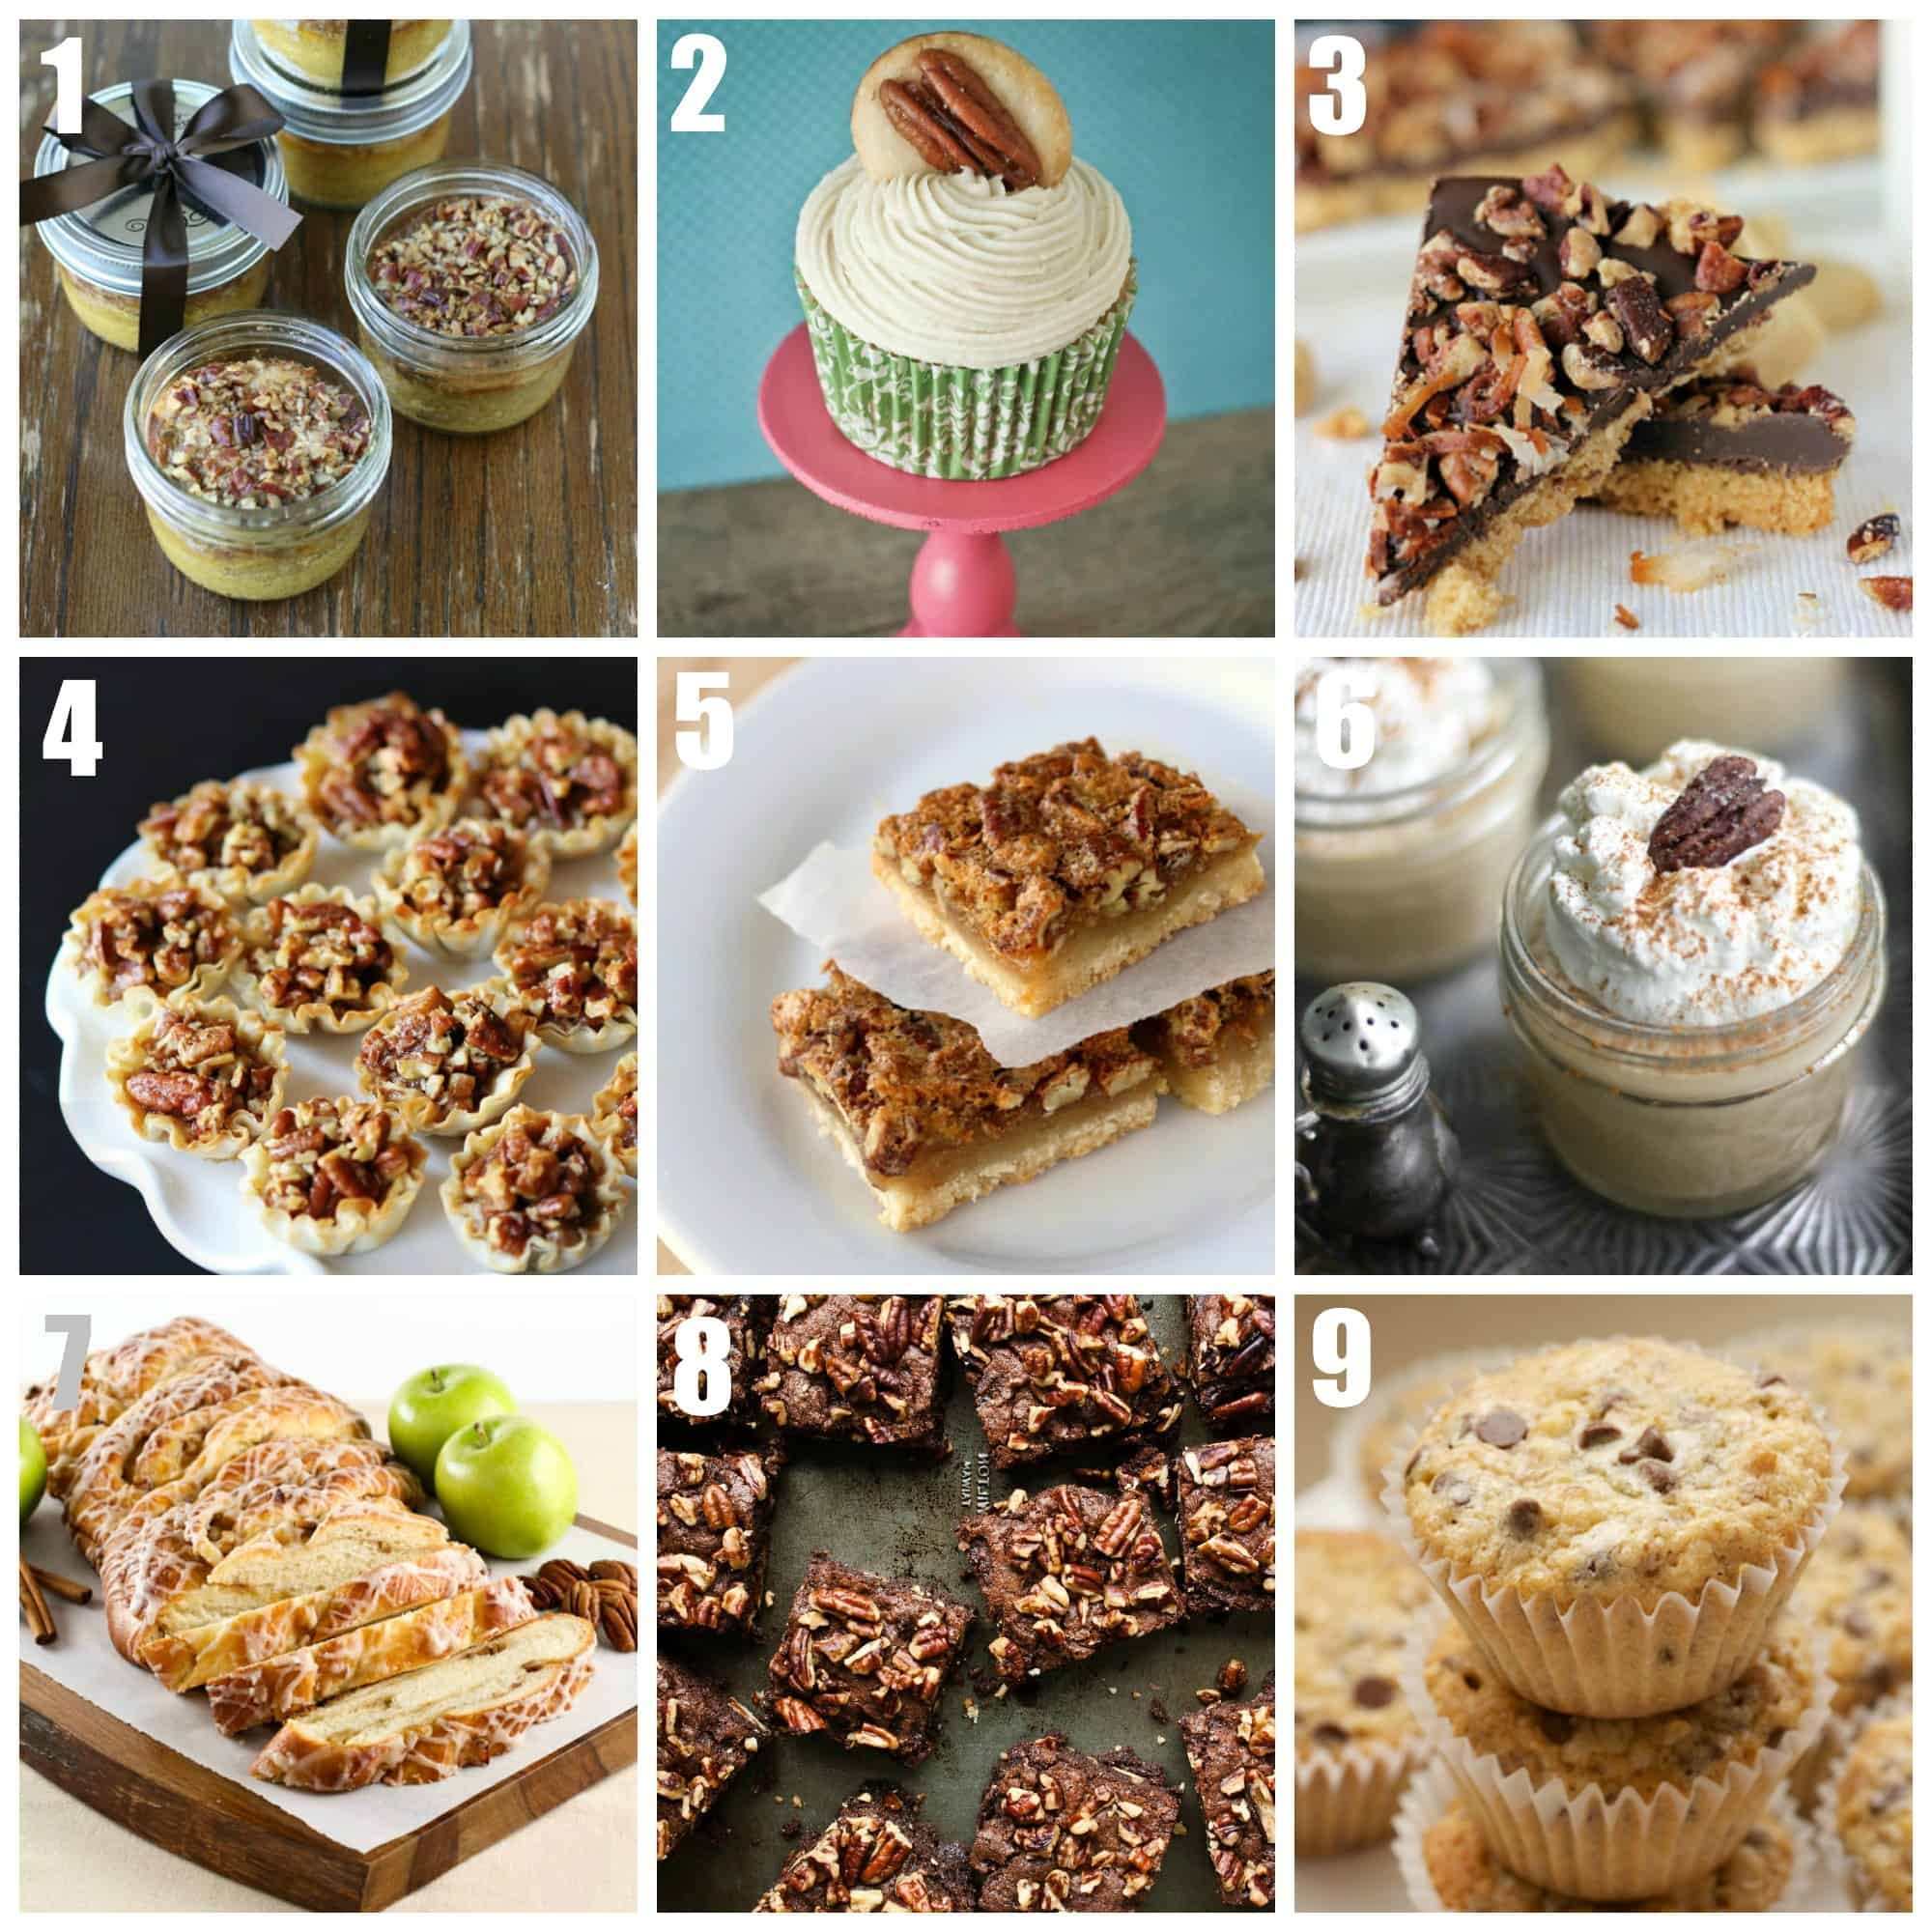 Easy and delicious baking recipes